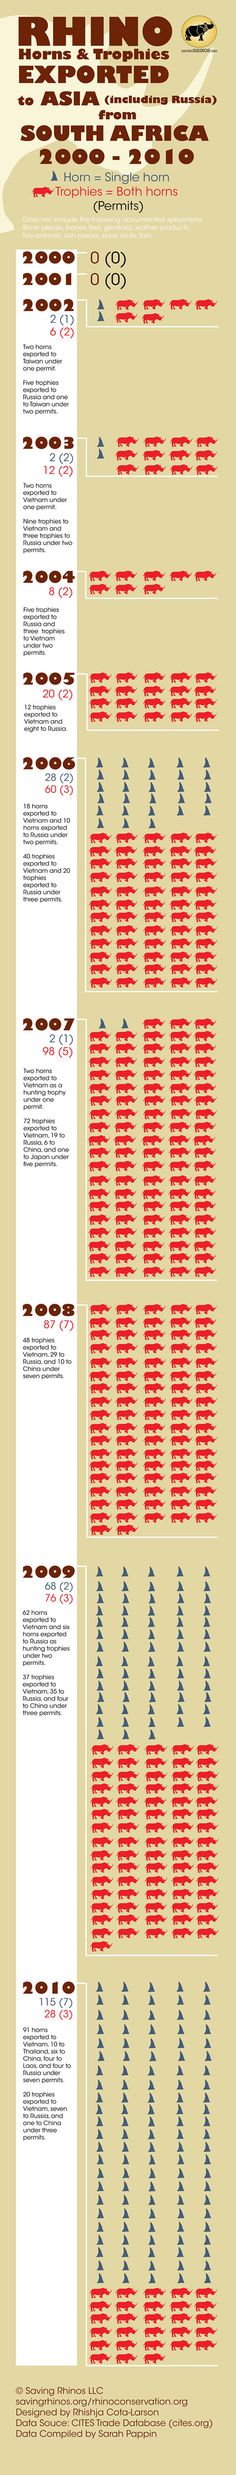 Infographic showing rhino horns and trophies exported to Asia (including Russia) from South Africa, 2000 — 2010